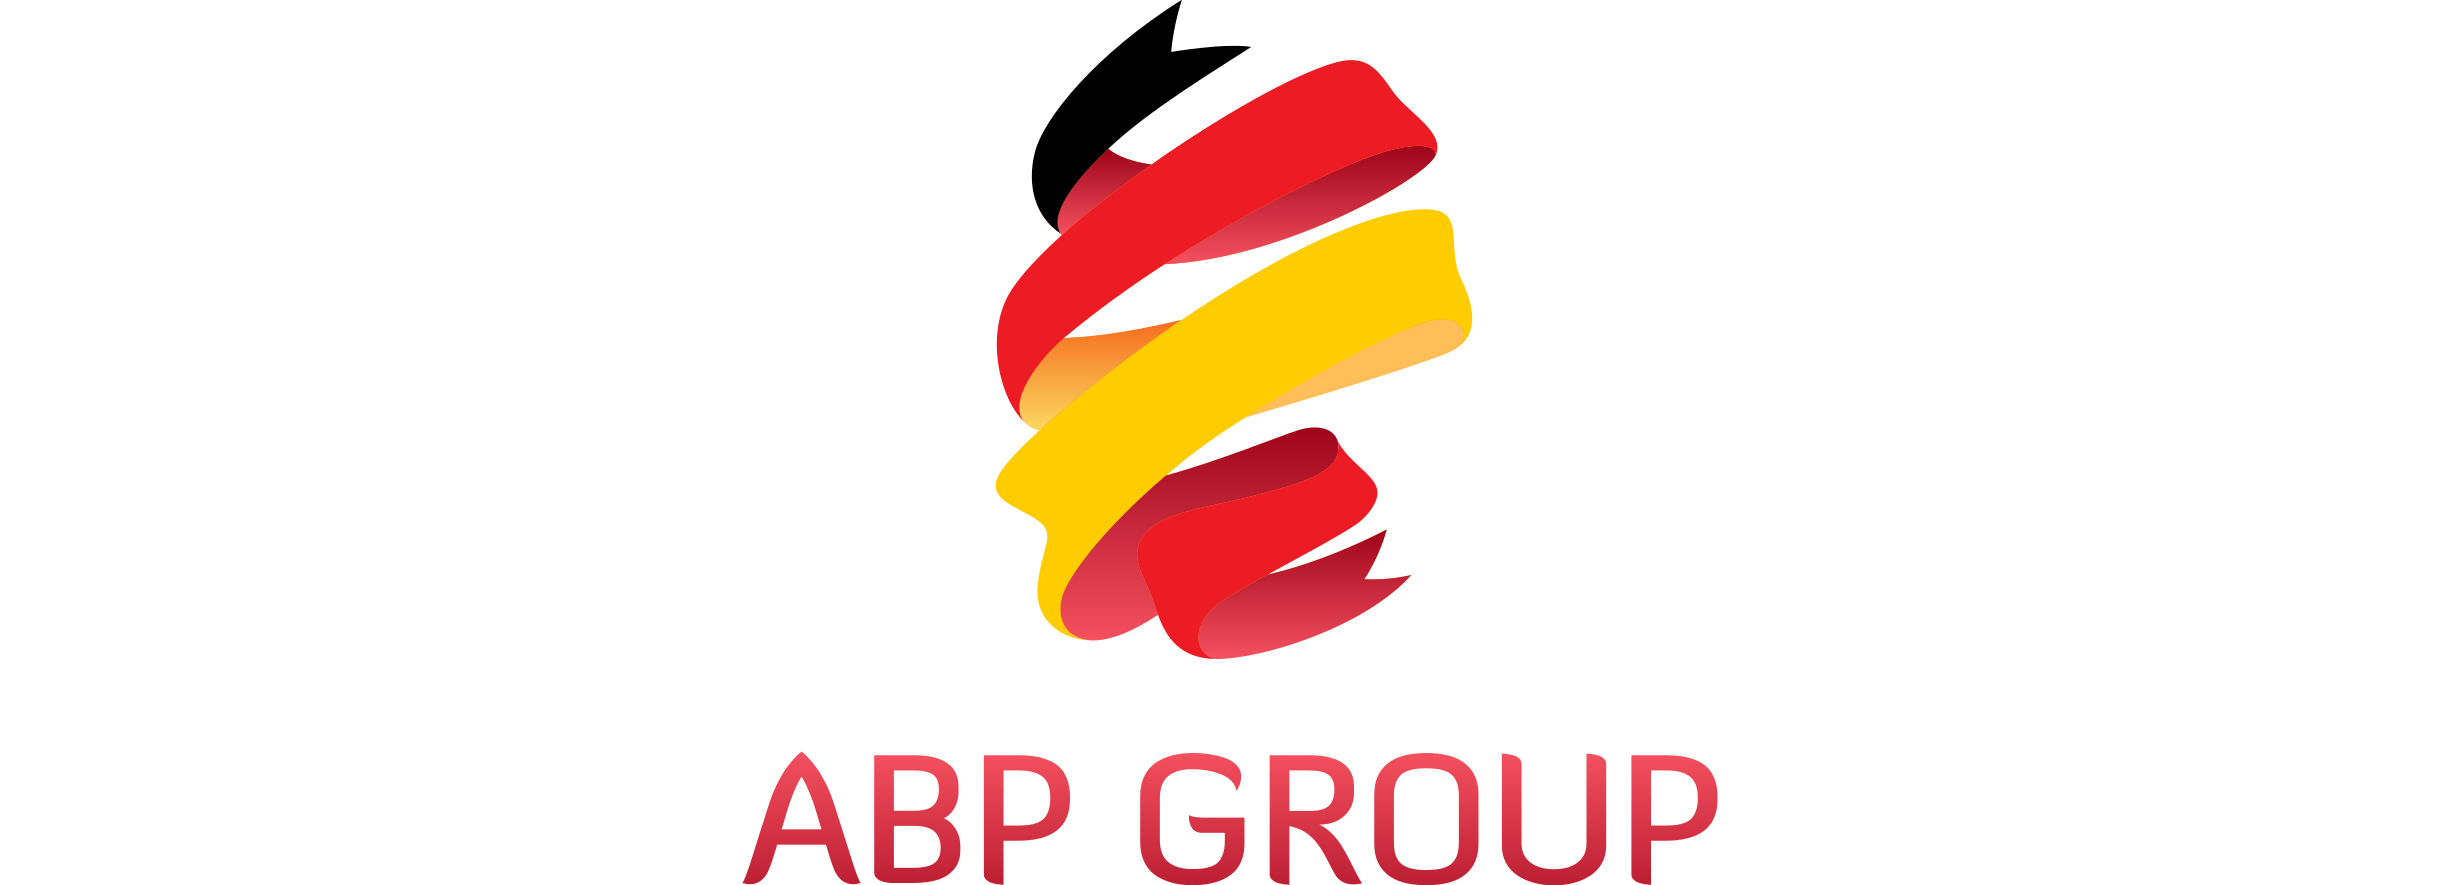 ABP GROUP